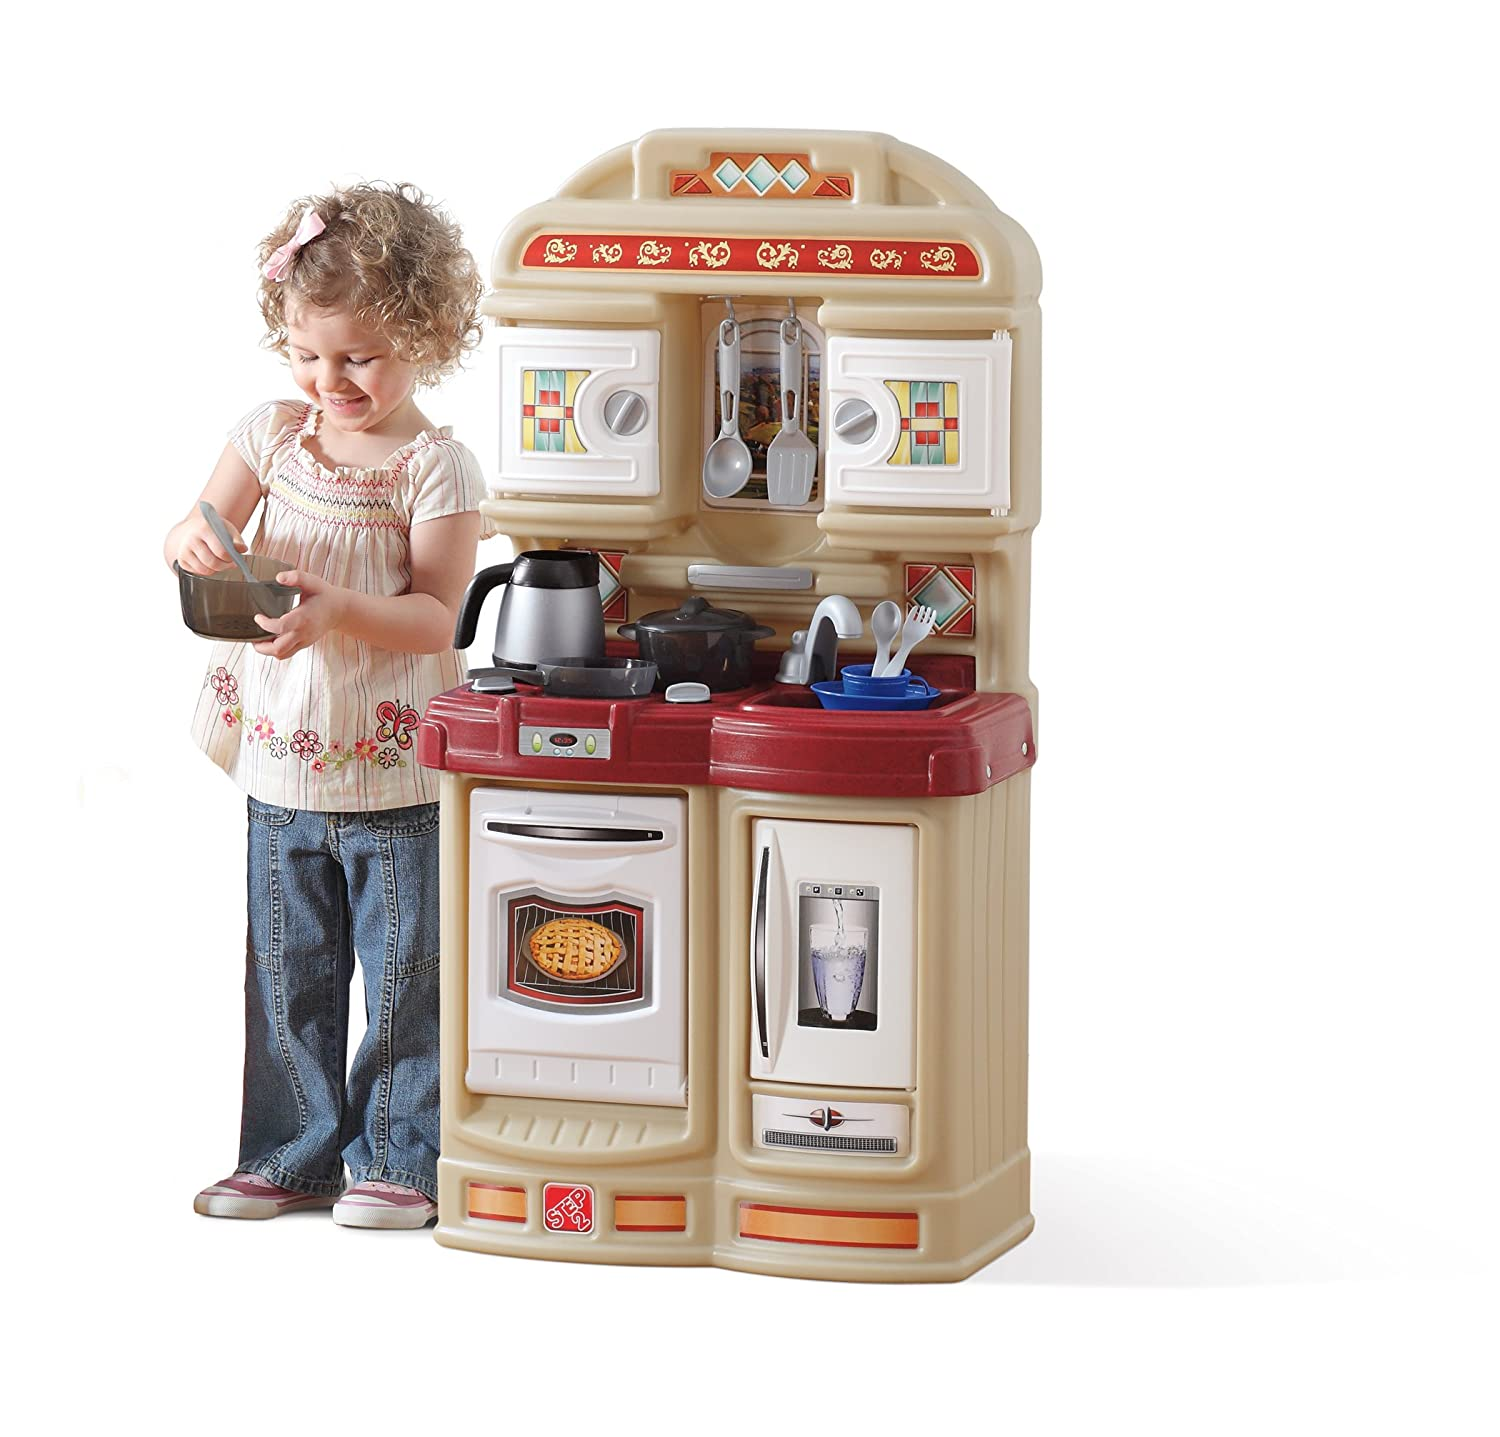 Best Toy Kitchens For Toddlers Great Role Playing Toy 2017